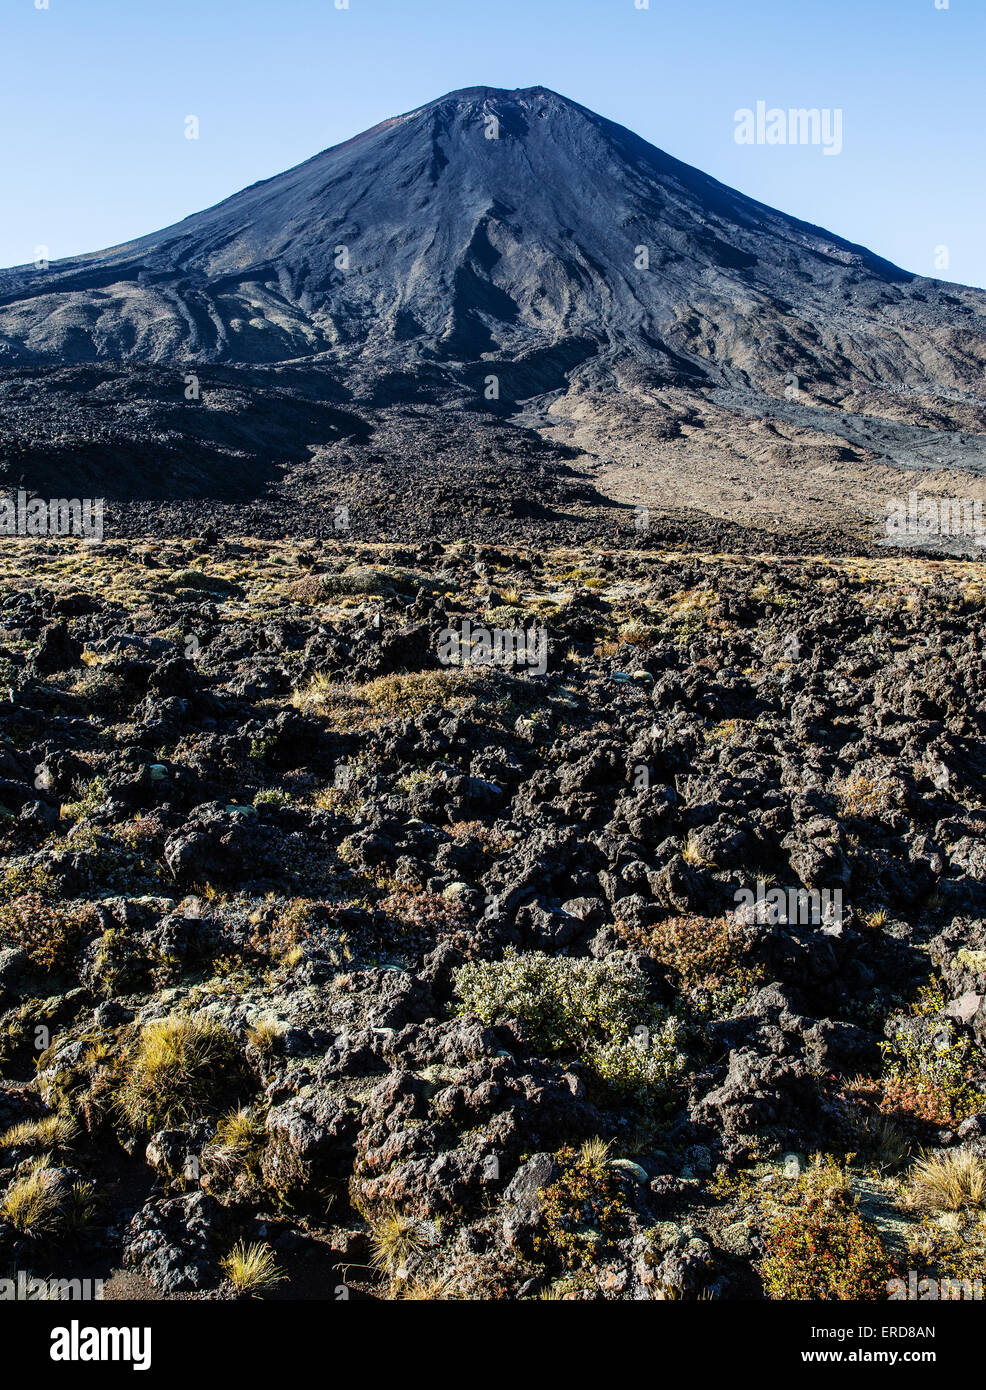 Brooding cone of active volcano Mount Ngauruhoe from the Tongariro Alpine Crossing in New Zealand's North Island - Stock Image